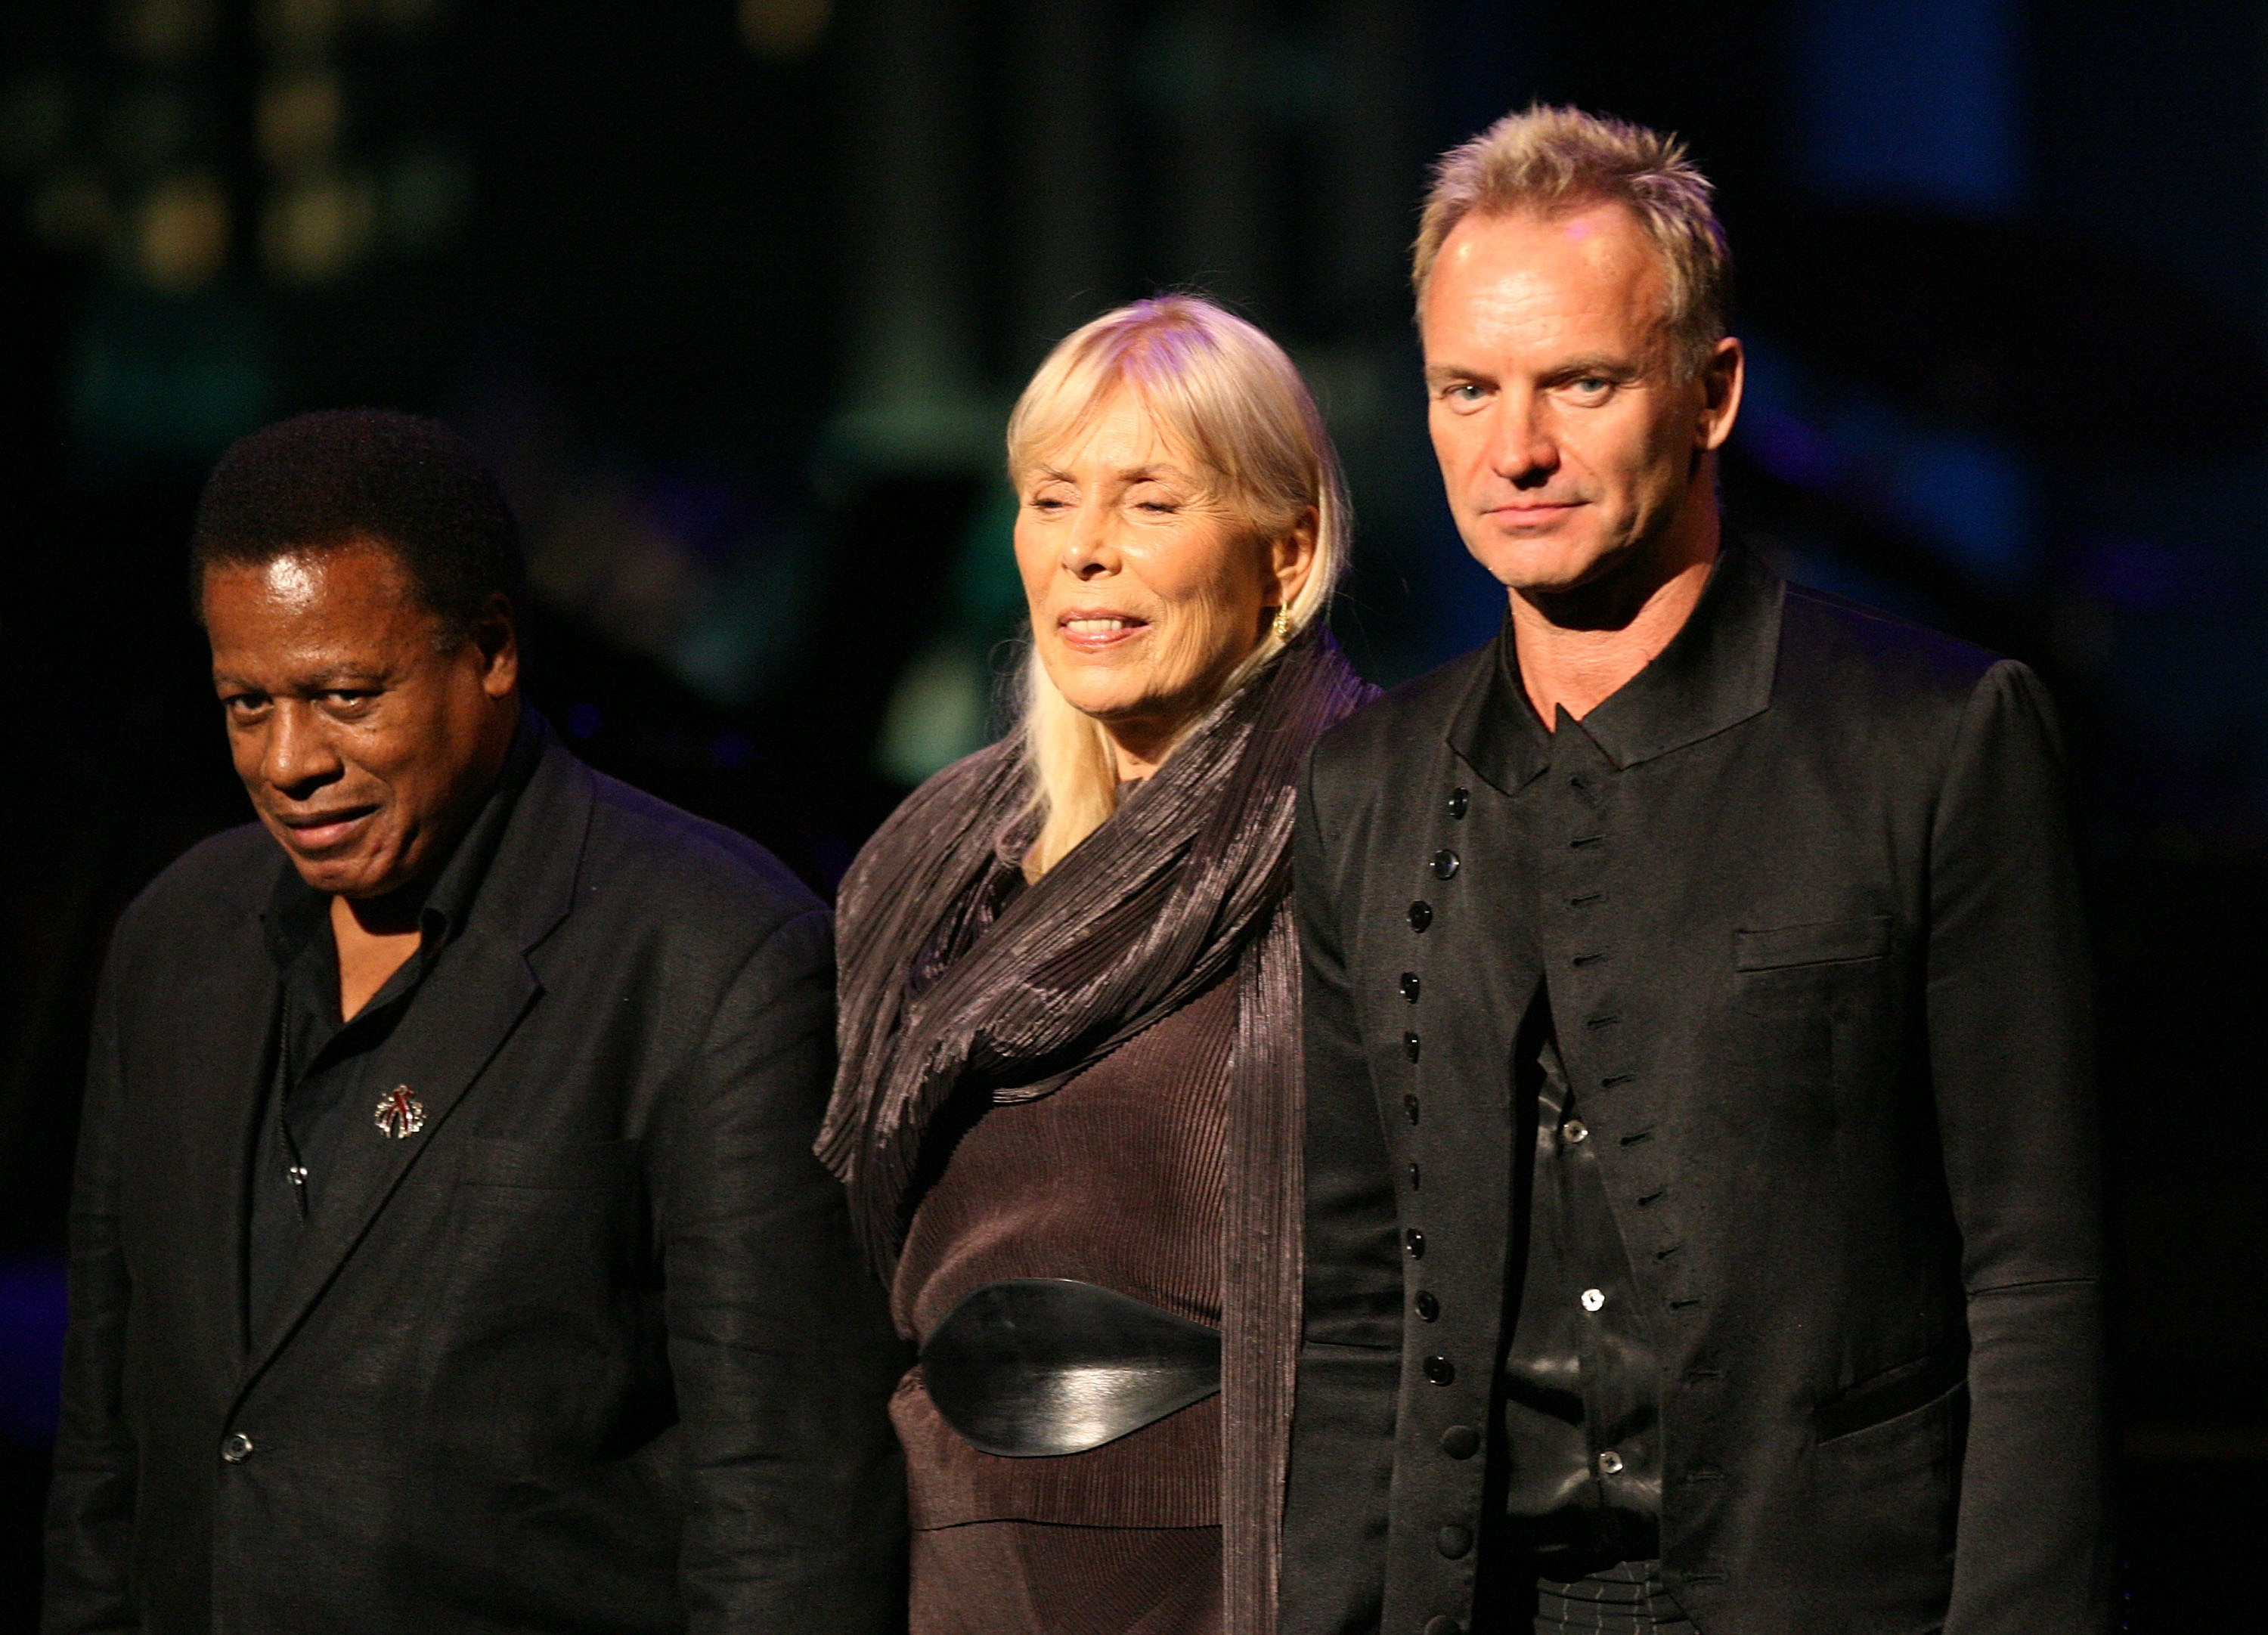 Recording artists Wayne Shorter, Joni Mitchell and Sting speak during the Thelonious Monk Jazz Tribute Concert For Herbie Hancock at the Kodak Theatre on October 28, 2007 in Los Angeles,  (Getty)